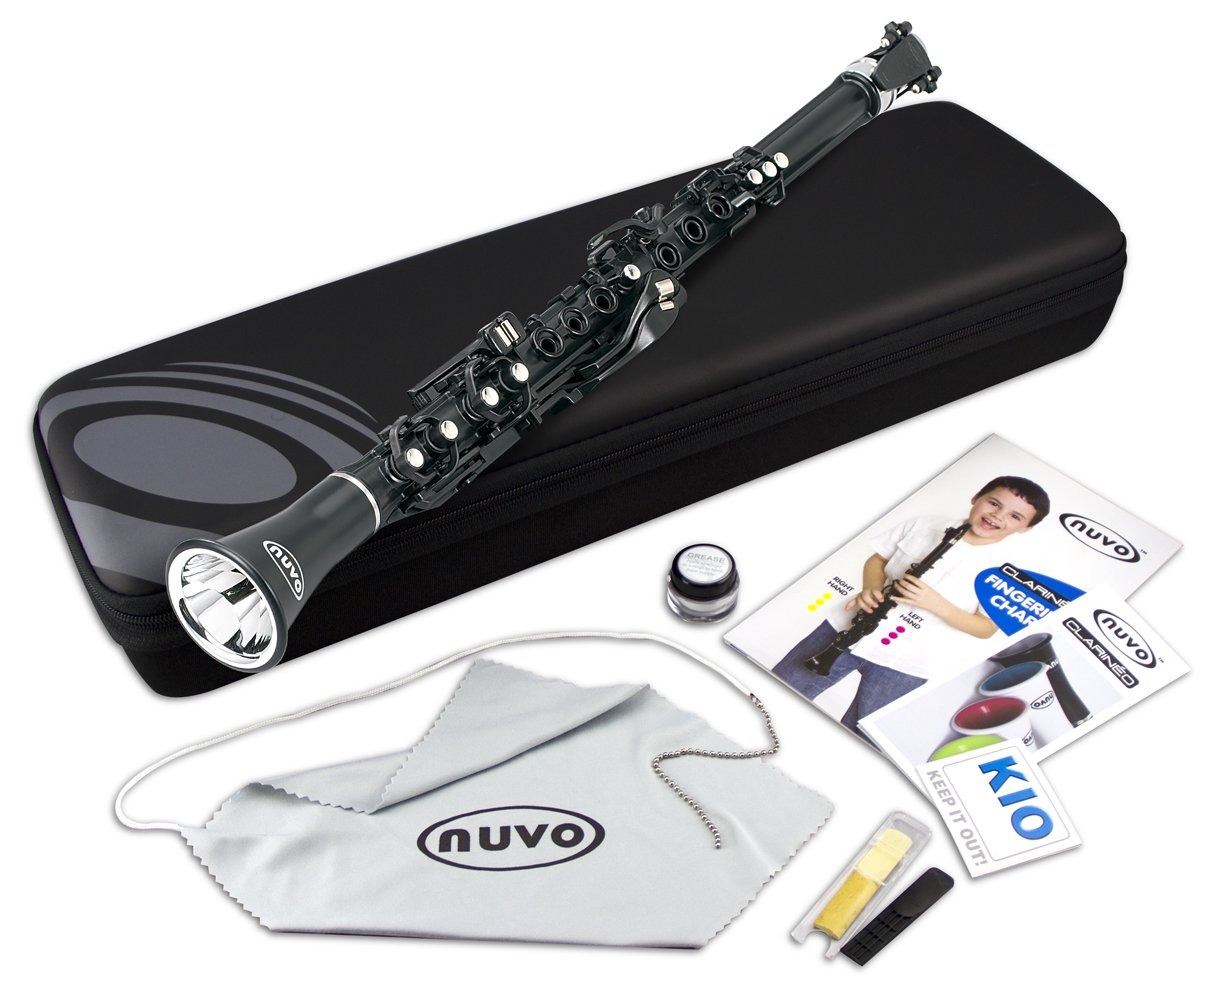 Nuvo N100CLBK Clarineo Kit with Case & Accessories, Black with Stainless Steel Collars